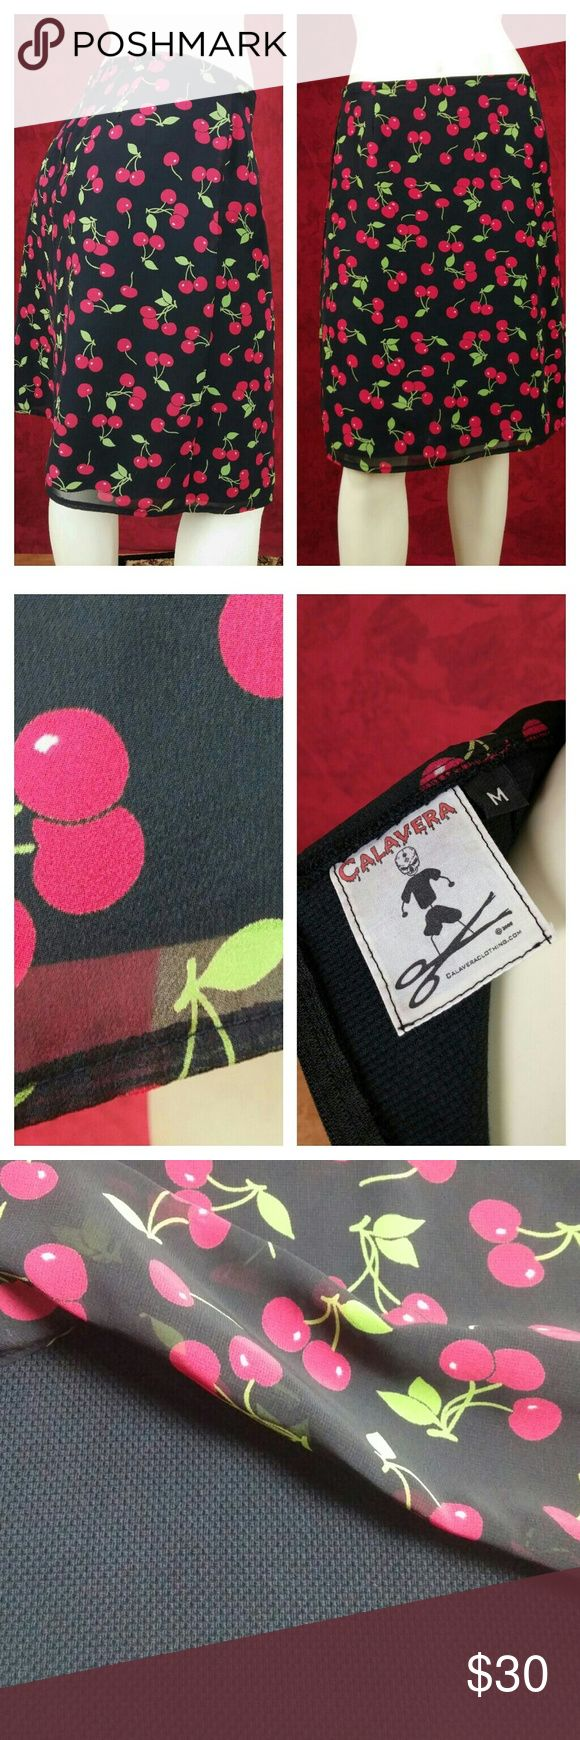 """Calavera cherry a-line knee length skirt This is a fun garment by Calvera. There is only a logo inside tag with M for a size. It appears to be heavy solid black linen underneath a layer of flowy black chiffon covered in cherries. Please see all pics and feel free to ask me anything. The waist measures 15""""1/2 and outer seam 20 1/2"""". 7 inch zipper in the back. I got it at consignment shop so not sure if it was worn at all by the perfect condition of the tag and garment itself.  I kept it…"""